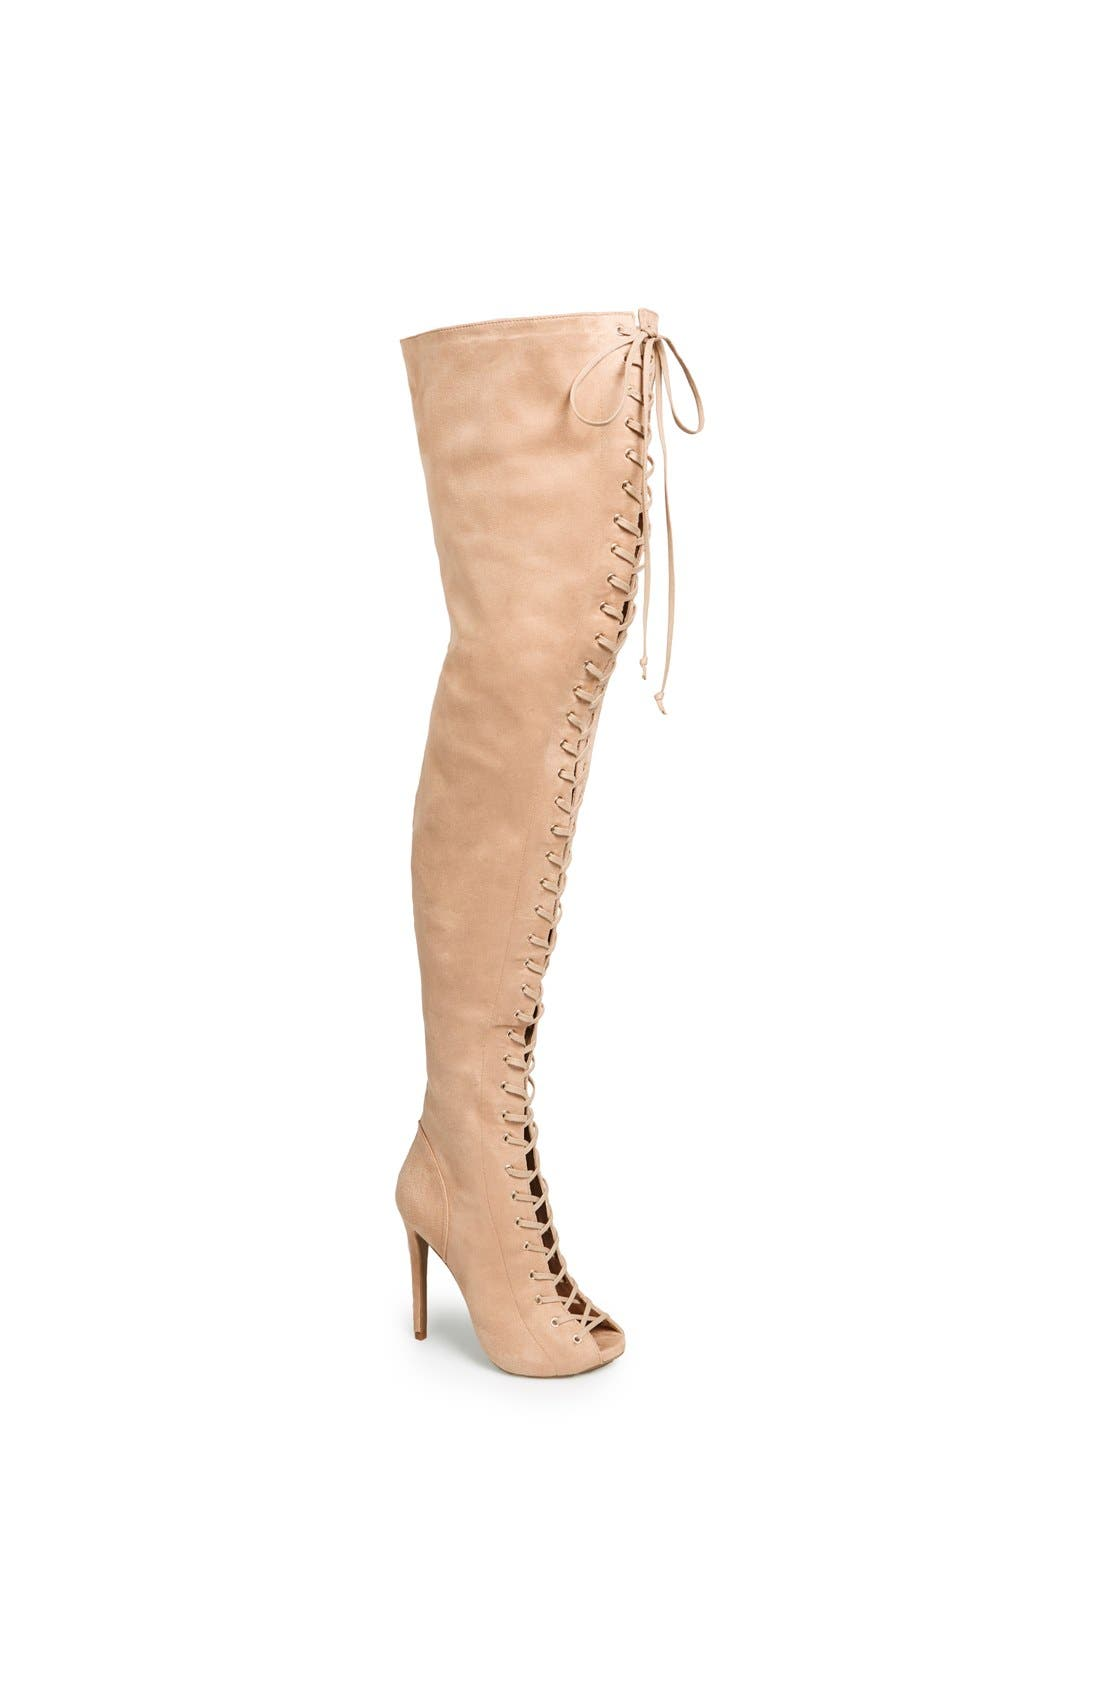 Main Image - ZiGi girl 'Piarry' Lace-Up Thigh-High Boot (Narrow Calf)